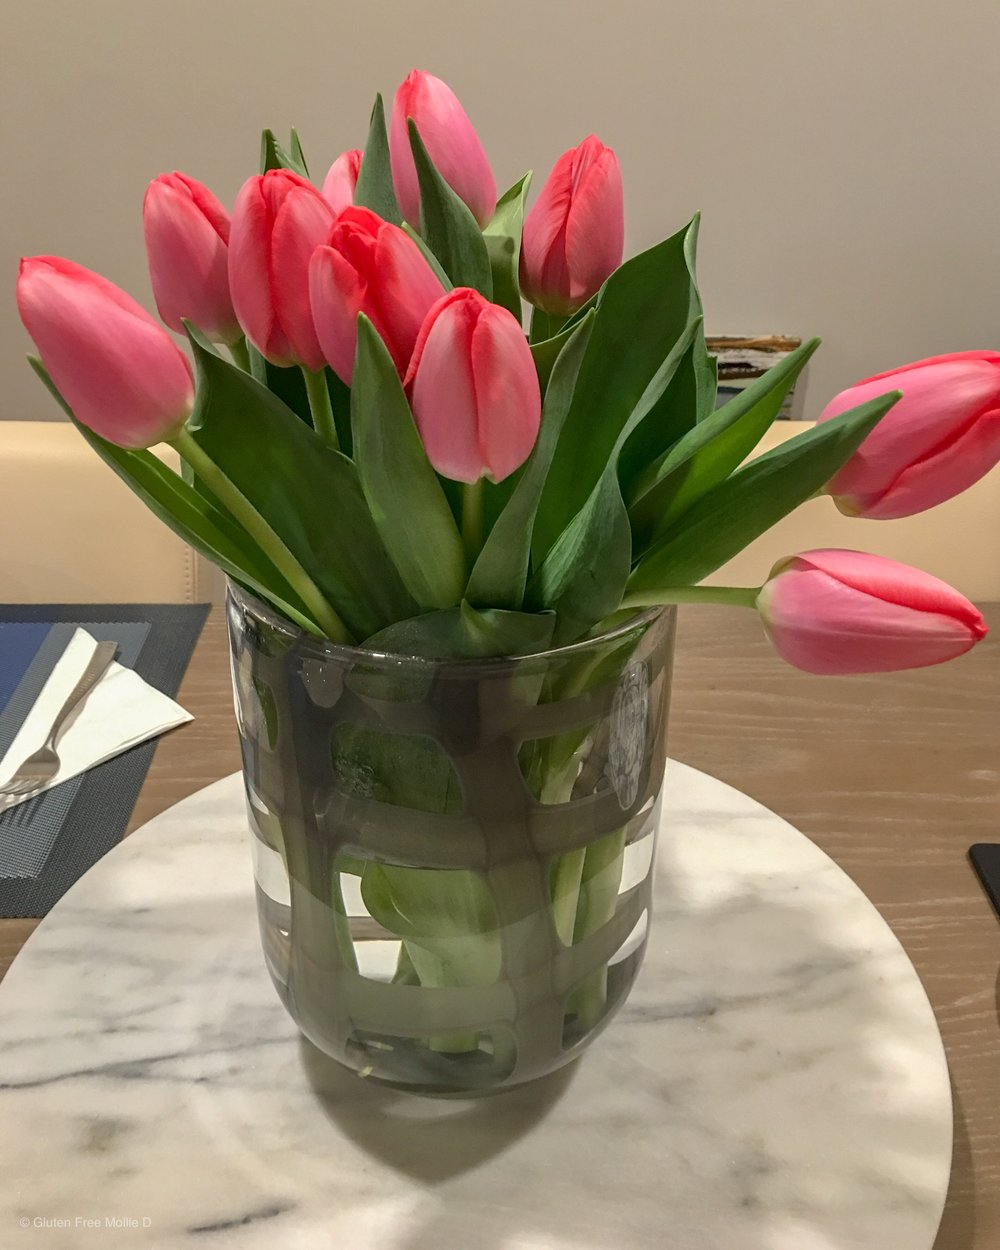 Pink tulips really pop in our new dining space.